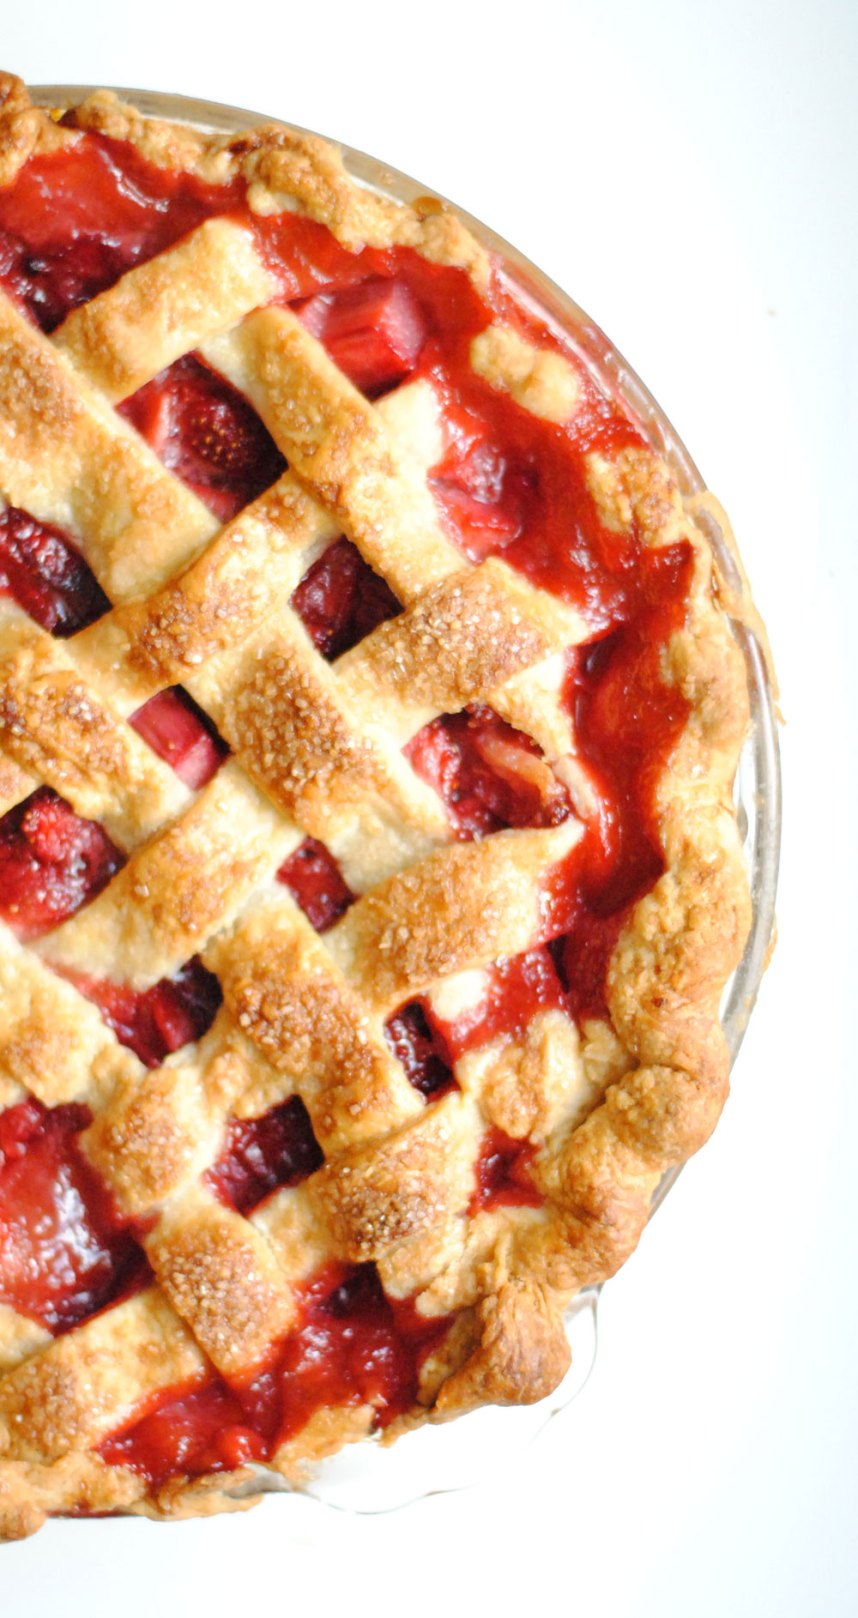 strawberryrhubarb7